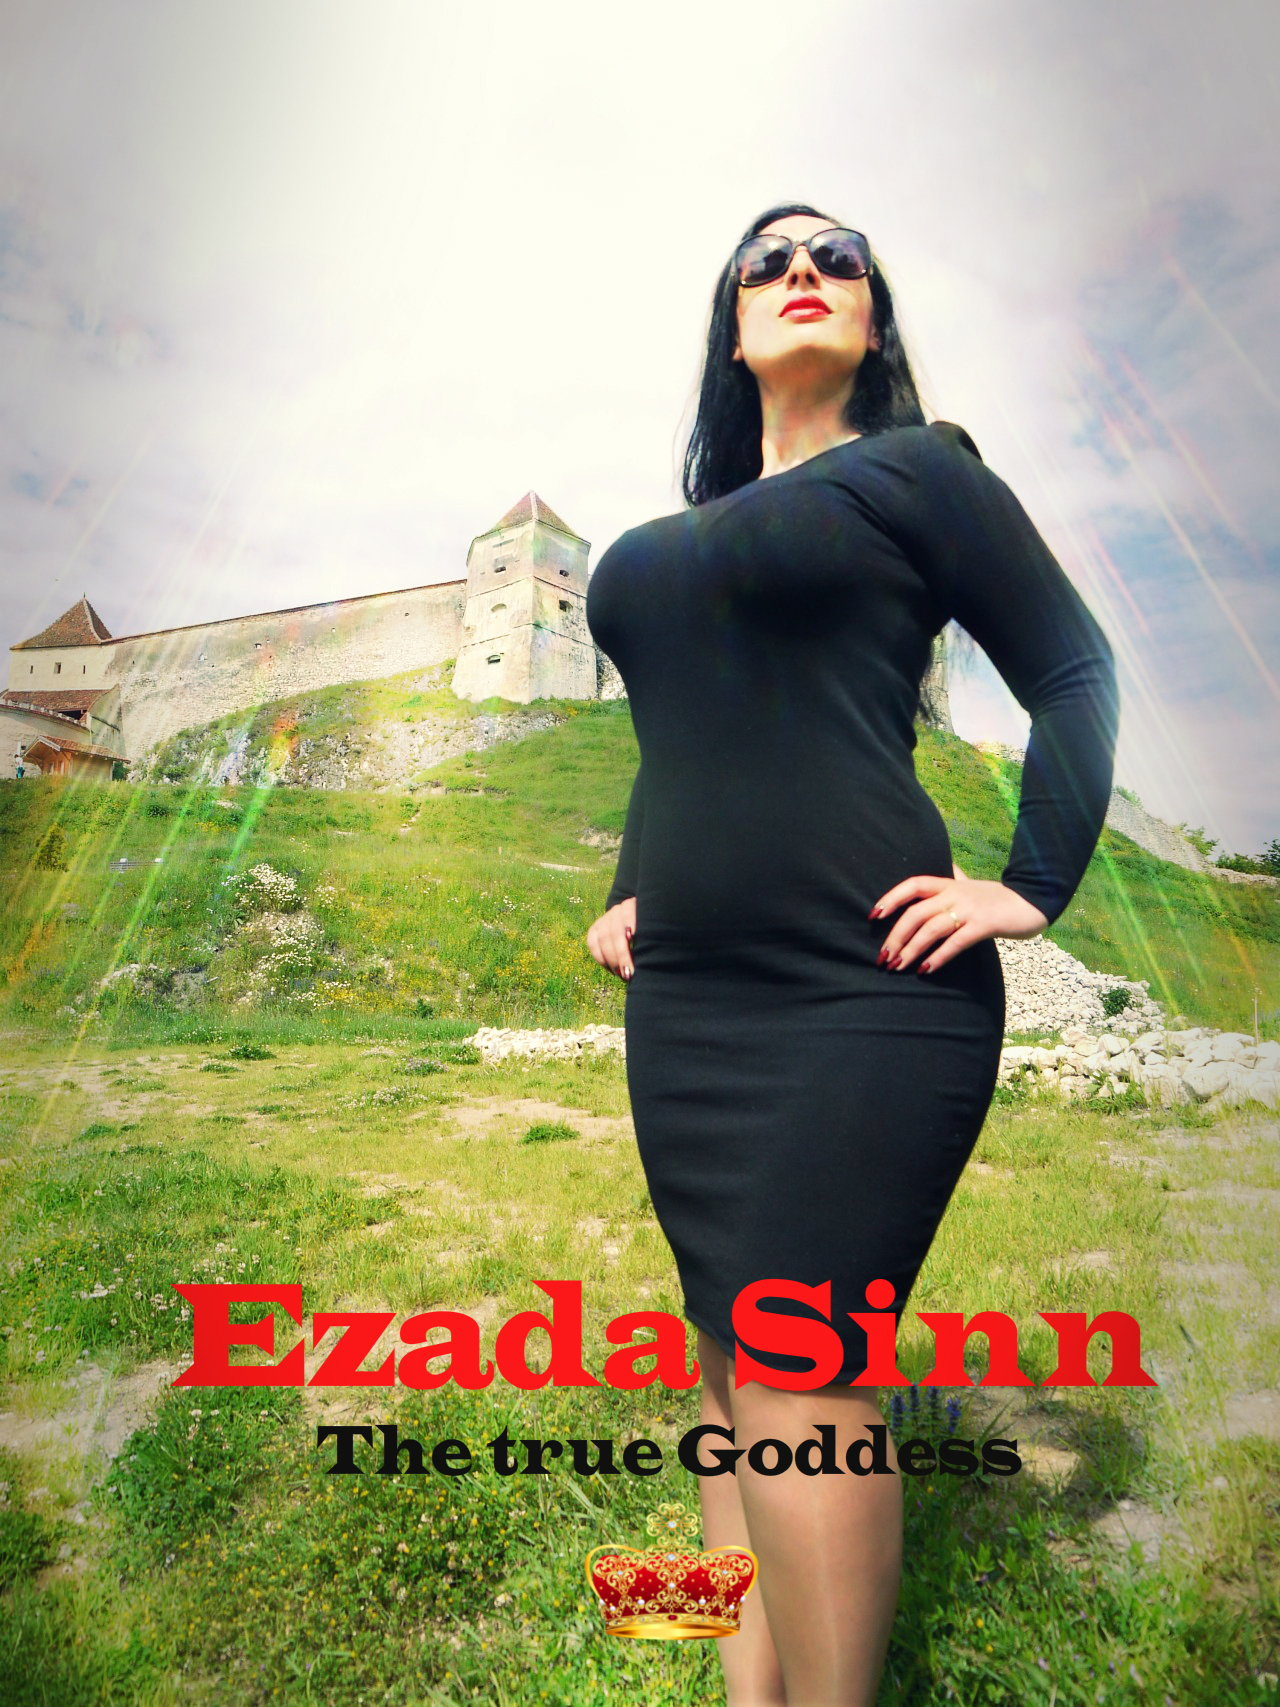 prayervideo dedicated to the great goddess ezada sinn